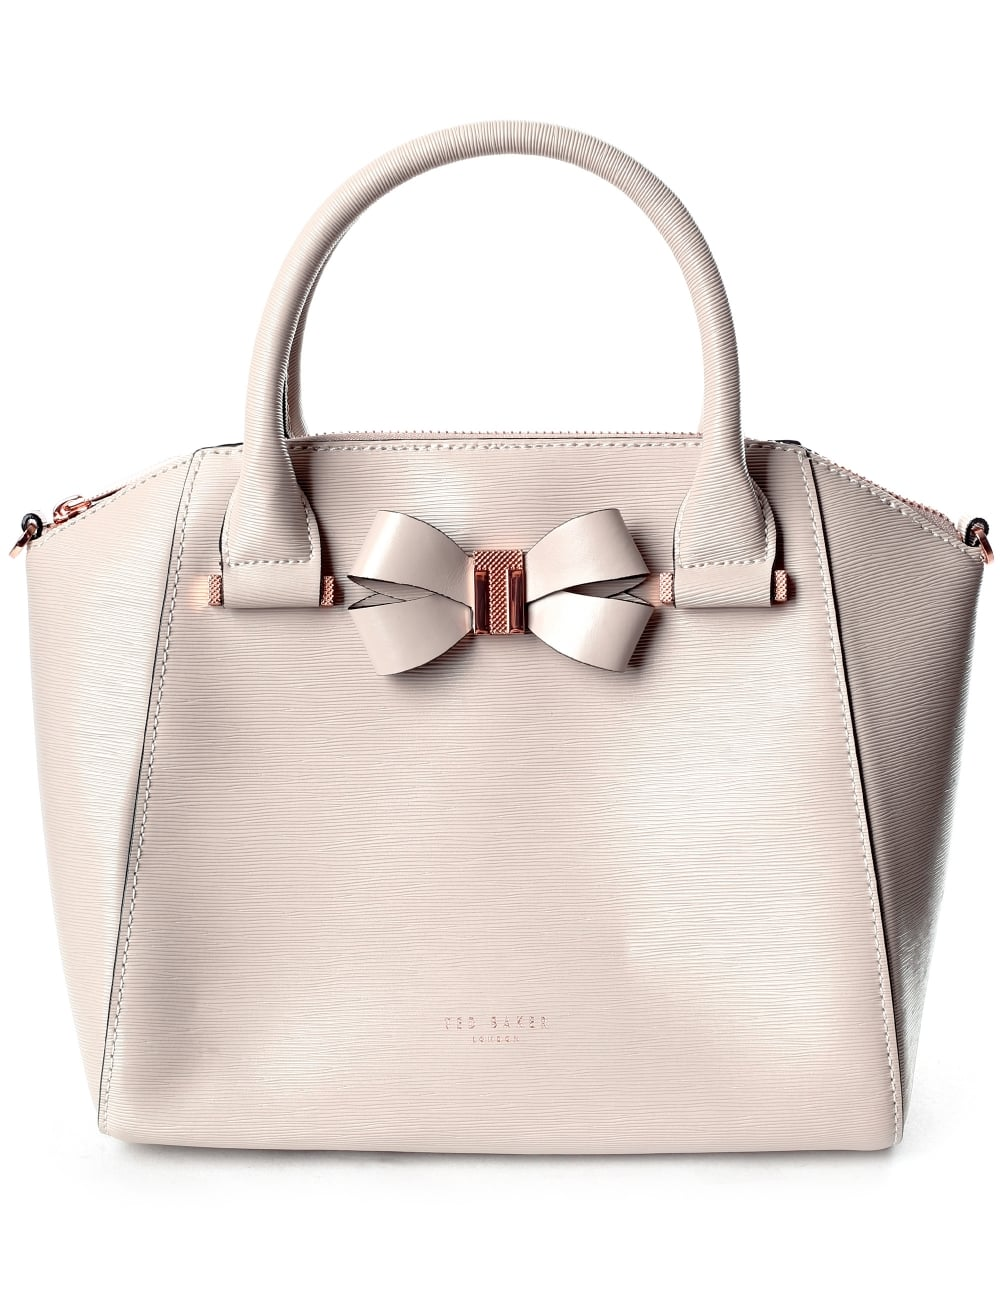 6887e5dc76756 Ted Baker Women s Charmea Bow Detail Small Tote Bag